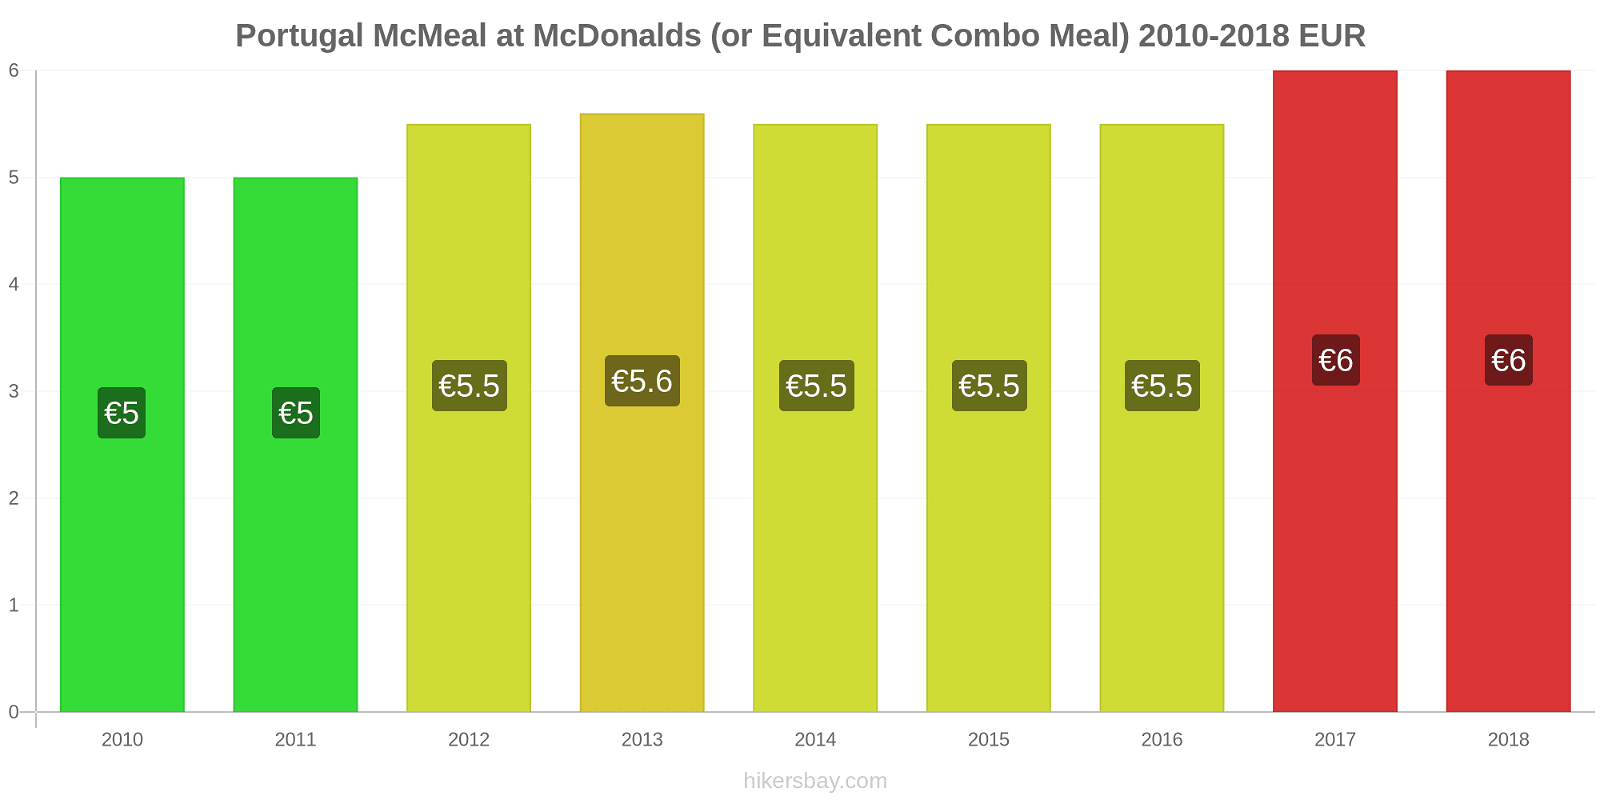 Portugal price changes McMeal at McDonalds (or Equivalent Combo Meal) hikersbay.com